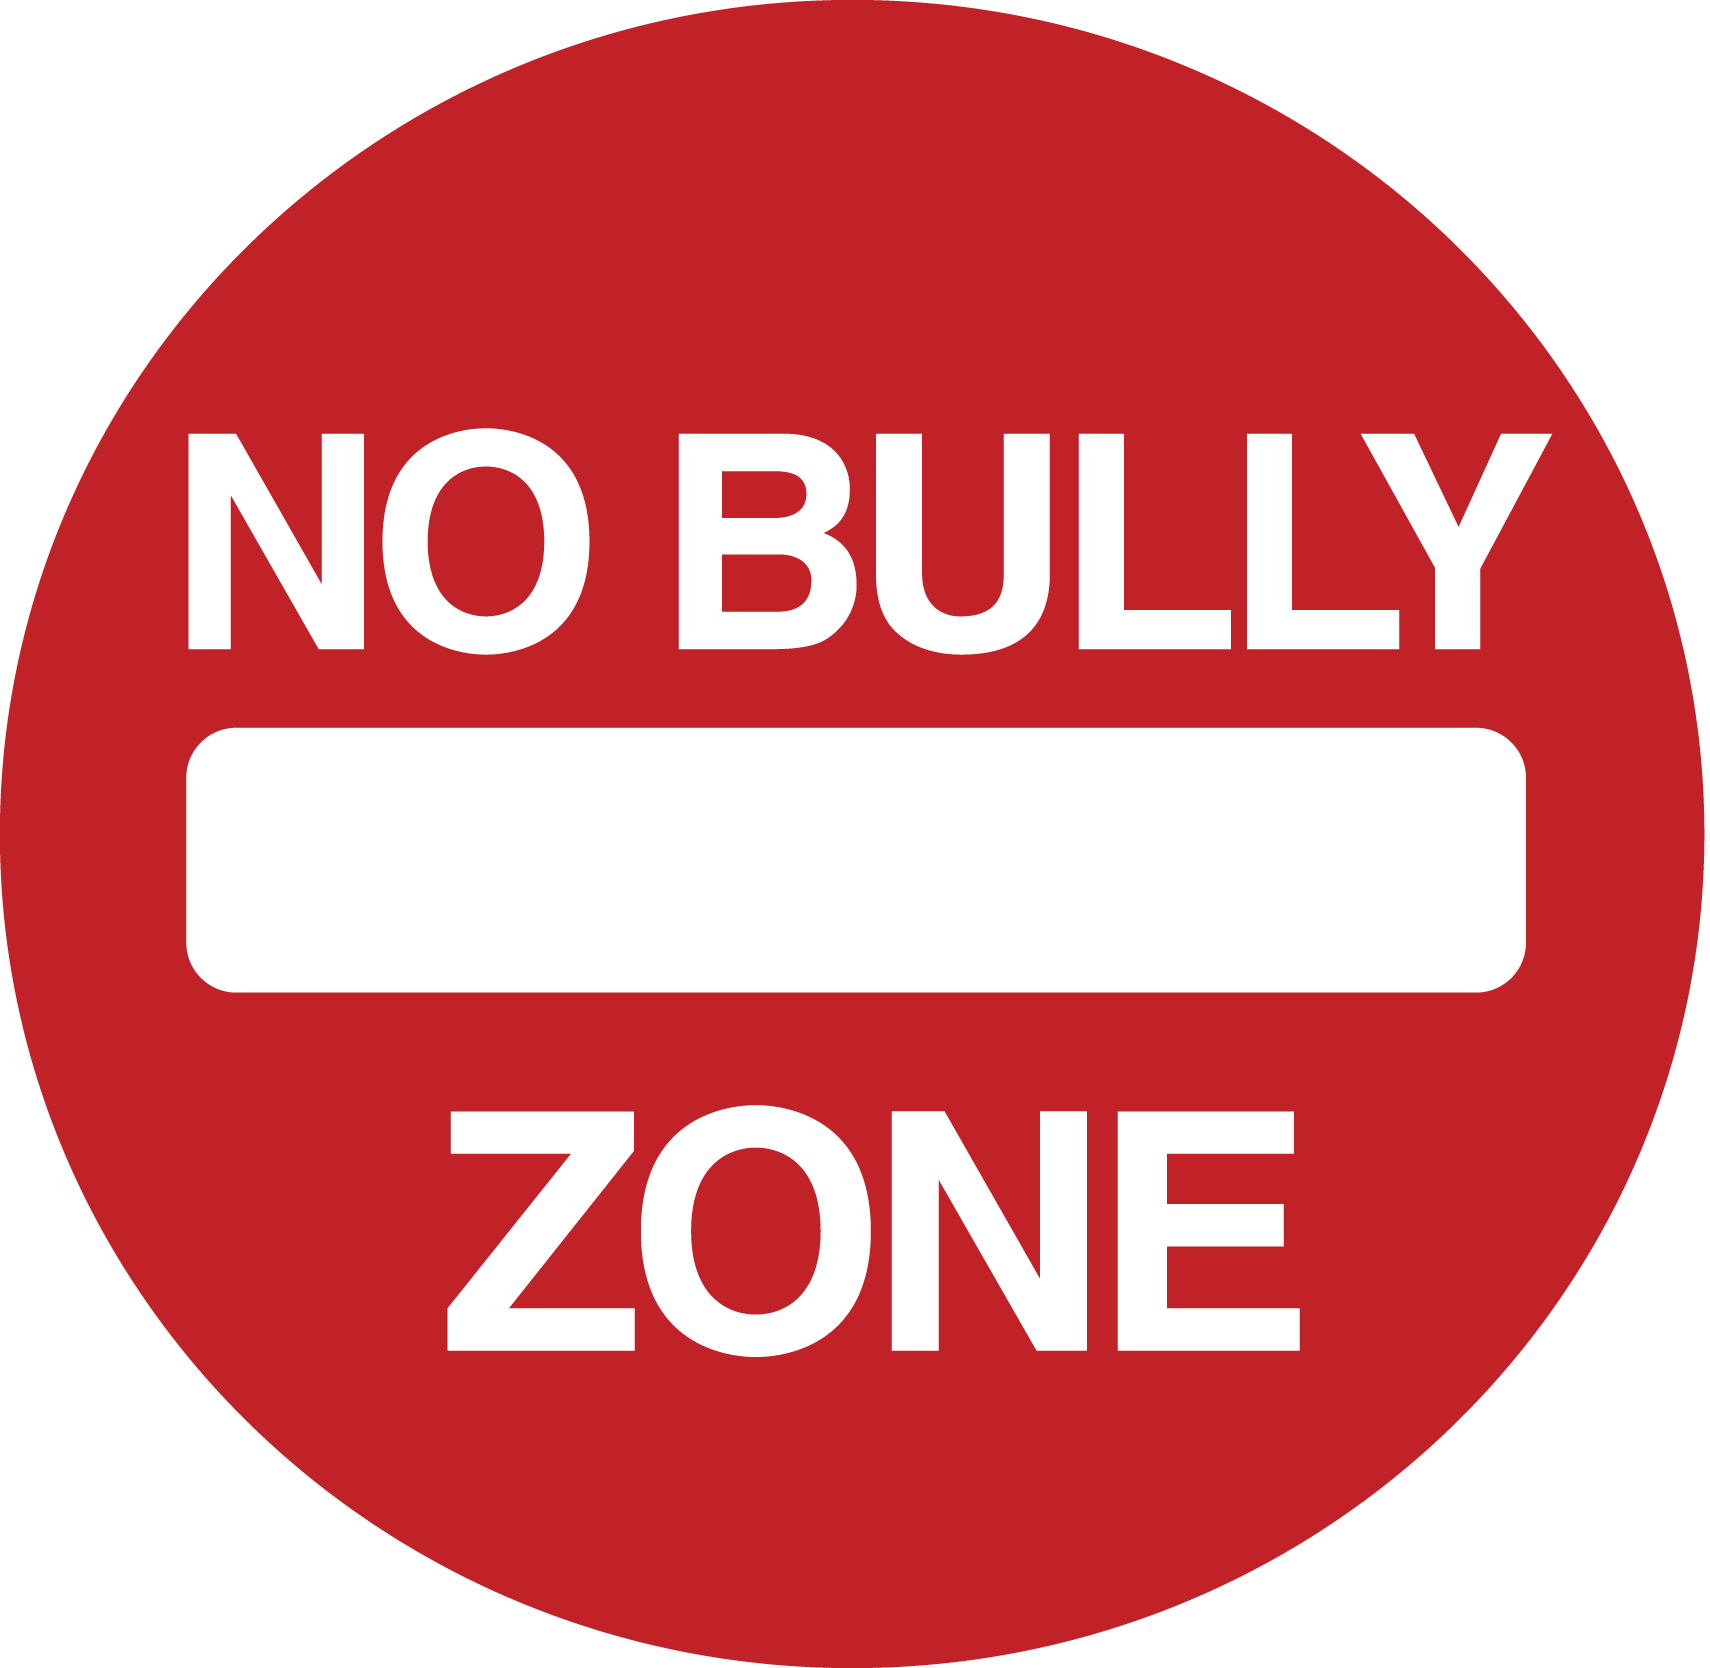 No bully quotes amdo. Words clipart bullying